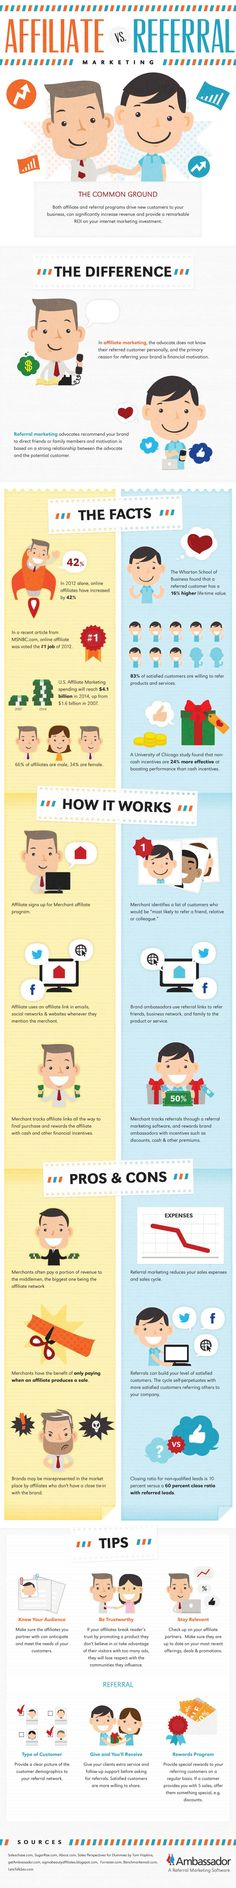 Affiliate or Referral Marketing : Both affiliate and referral programs are effective advertising channels that bring new customers to online businesses and rewards to referrers. Which one a marketer chooses depends on the market he refers, the sales goals he sets, the advertising budget and the level of customer loyalty he... > http://infographicsmania.com/affiliate-or-referral-marketing/